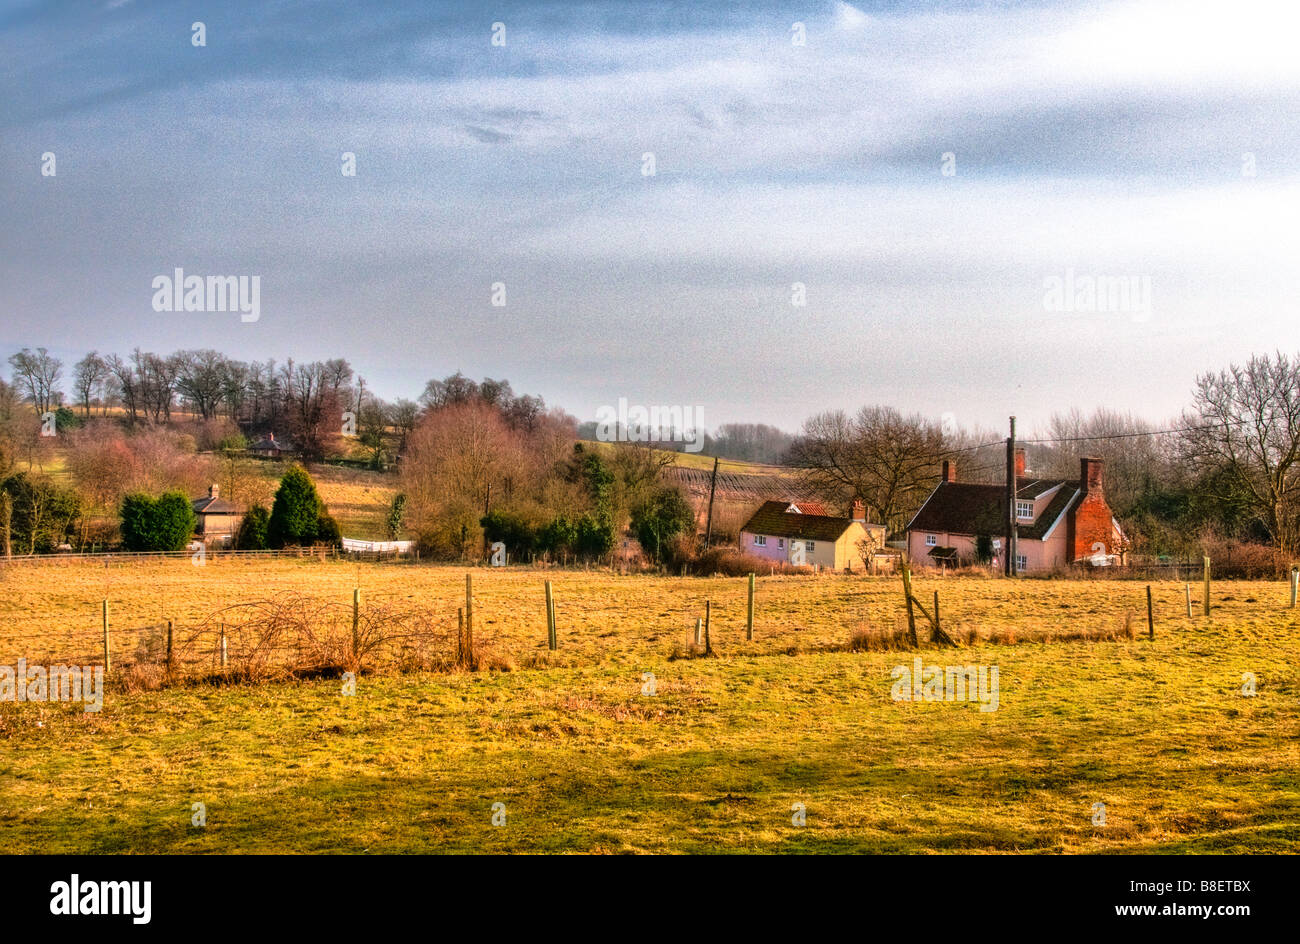 Levington, Suffolk Stock Photo: 22454094 - Alamy